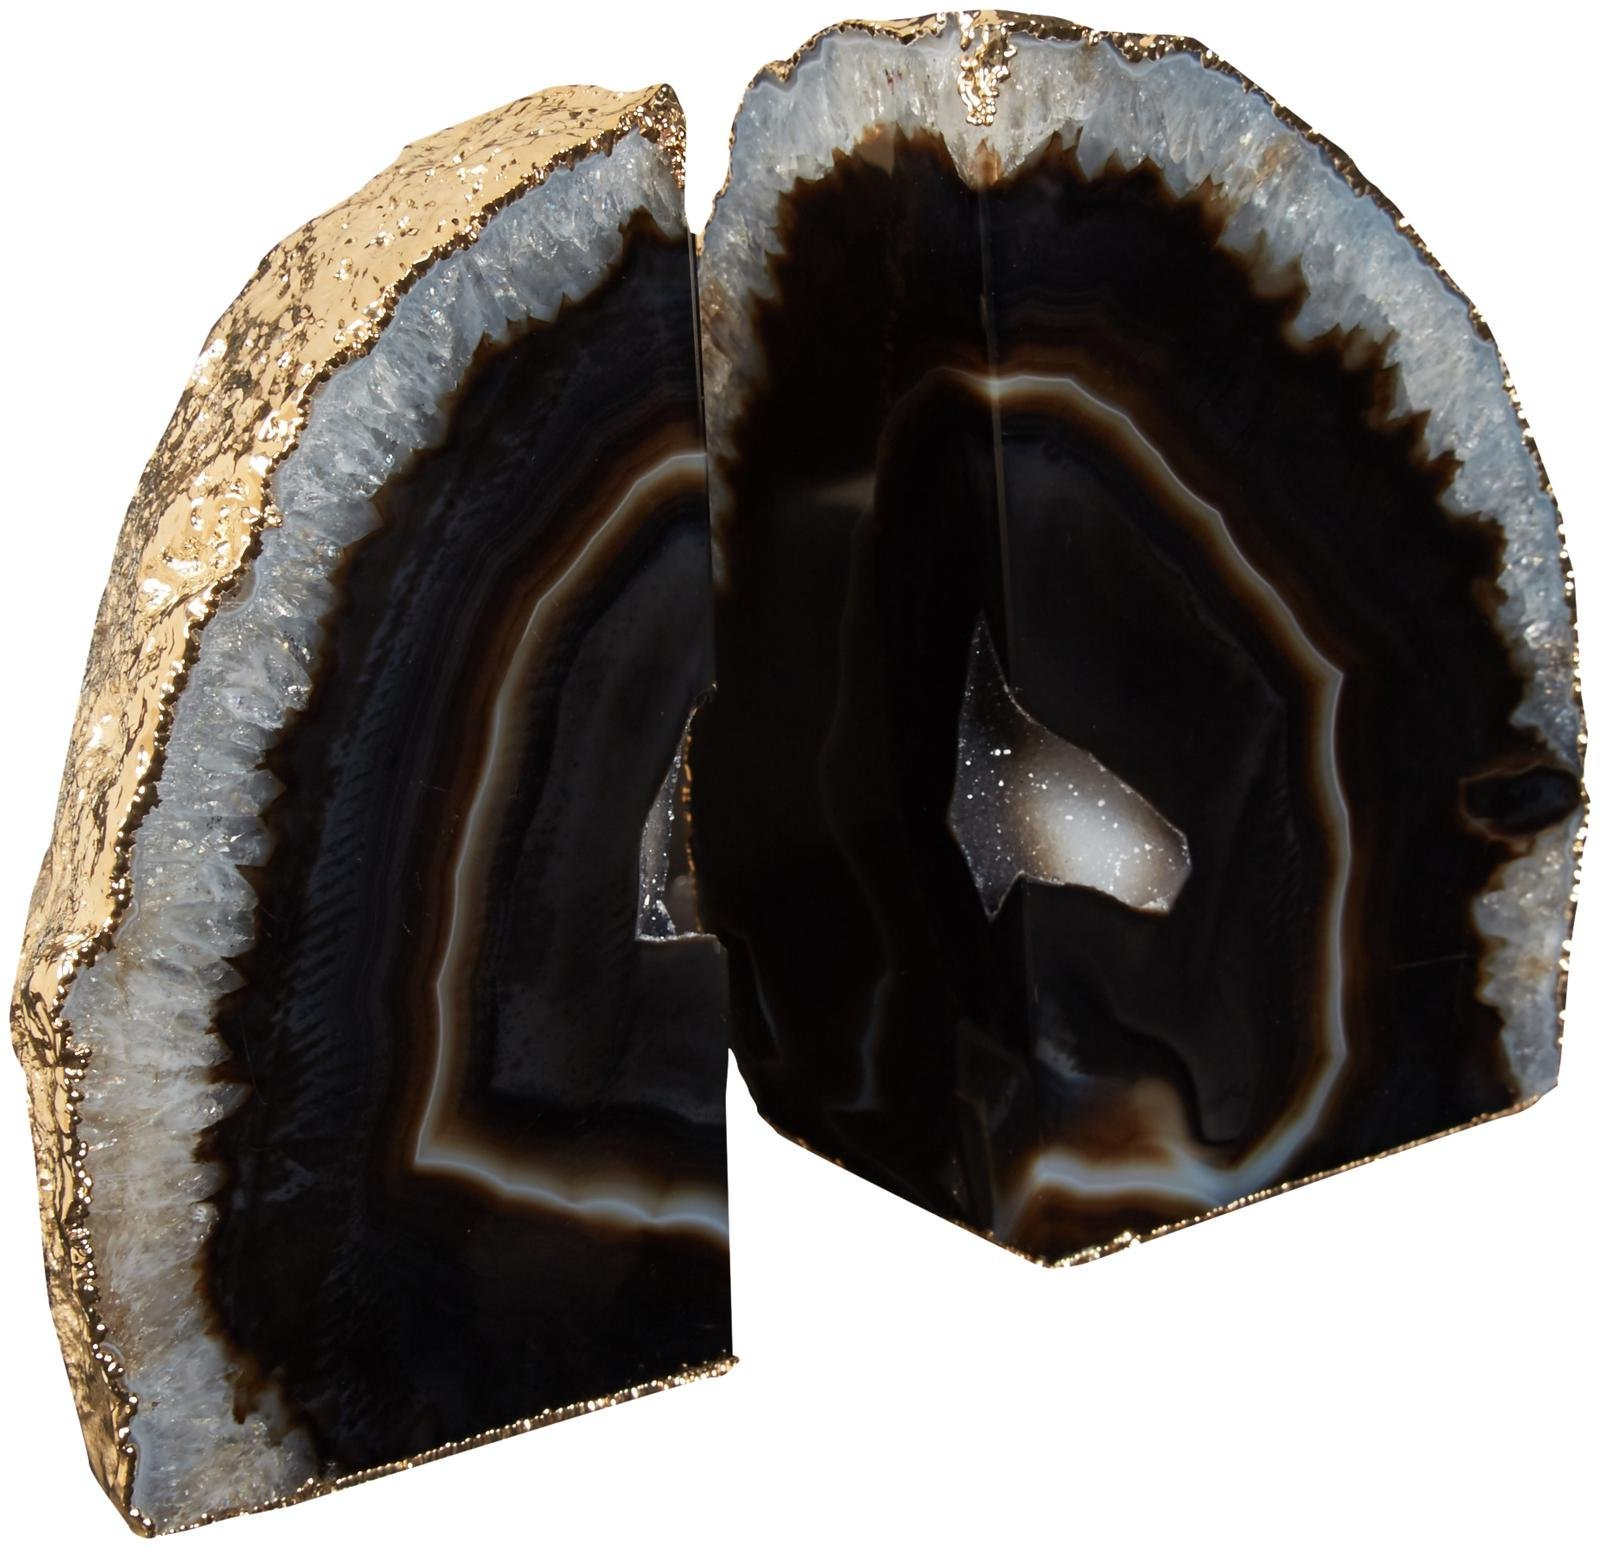 Bartky Minerals Agate Bookends Gold Electroplated - Black